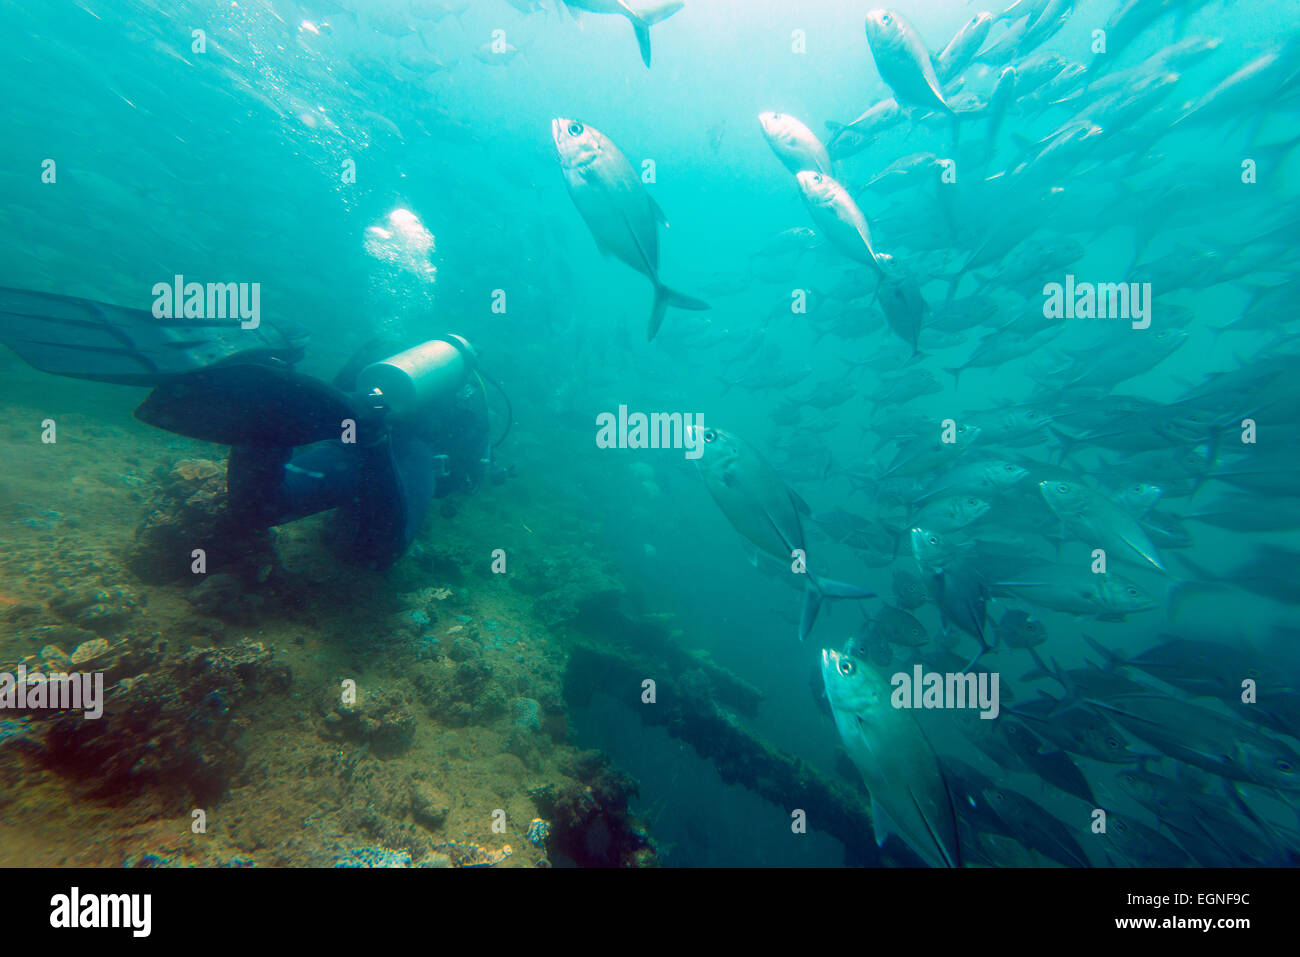 South East Asia, Philippines, Luzon, Subic Bay, scuba diving wreck dive - Stock Image